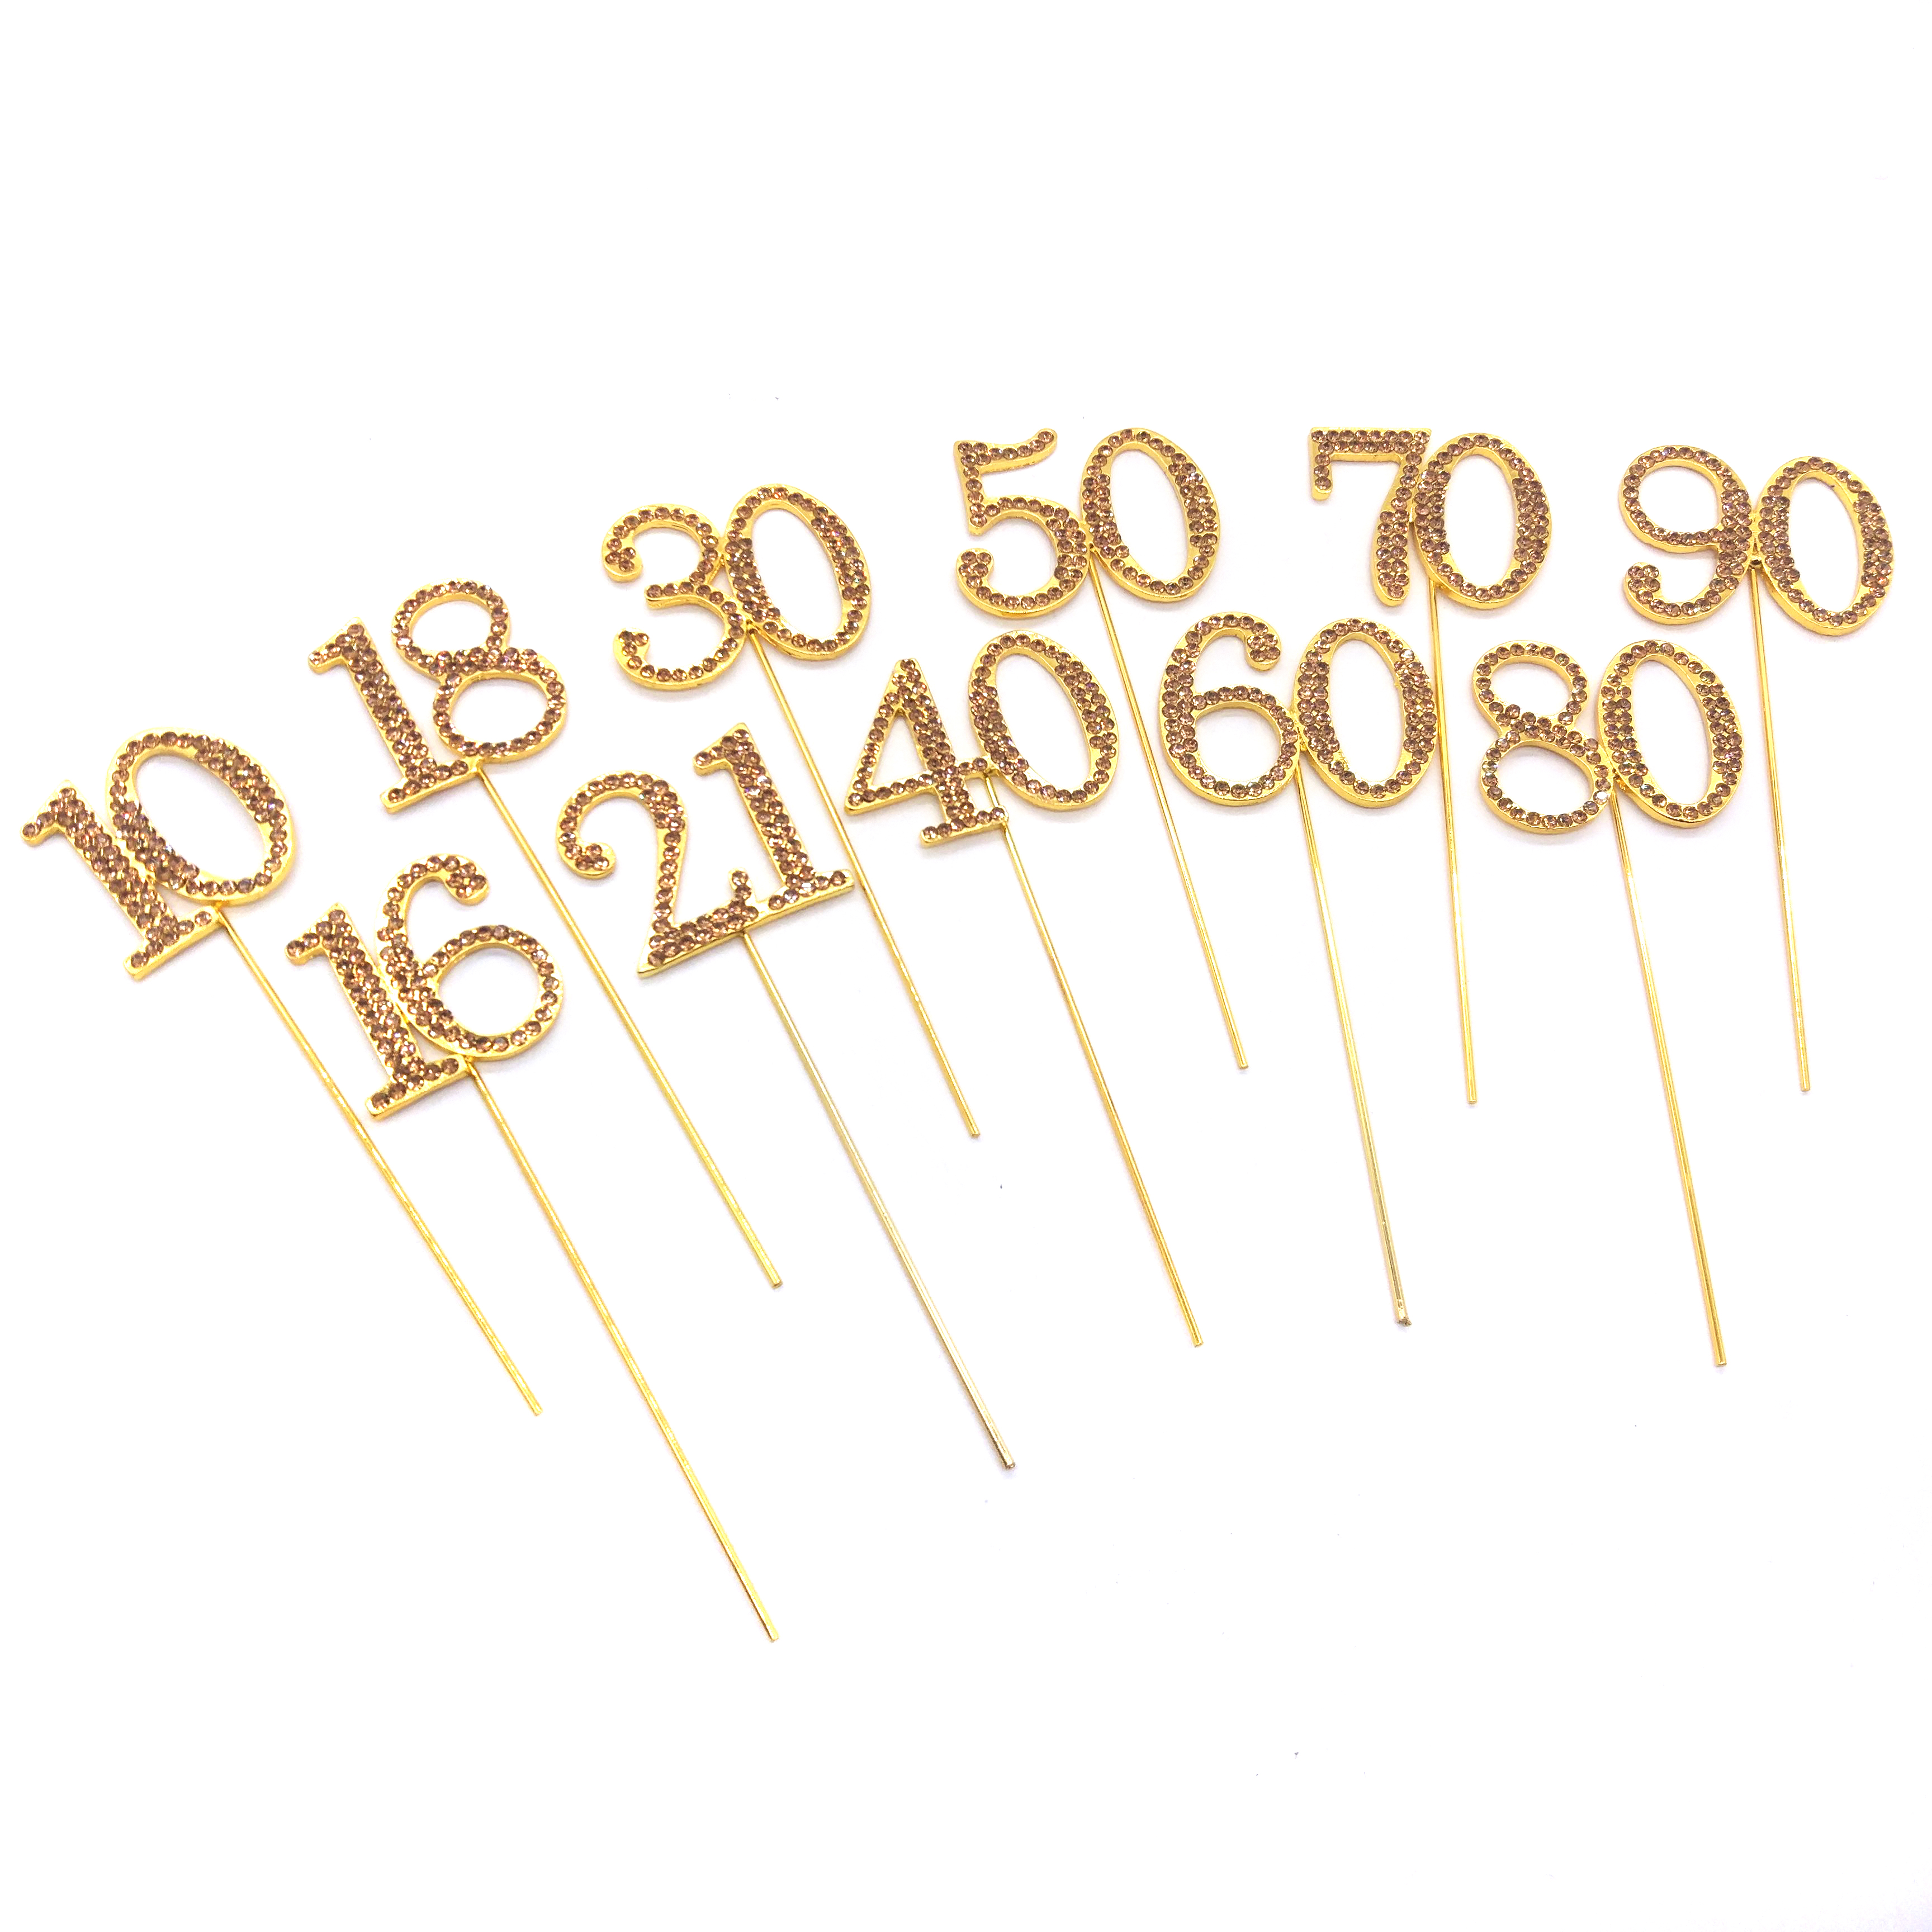 0-100 Rhinestone GOLD Table Number for Wedding, Birthday, or any Special Events